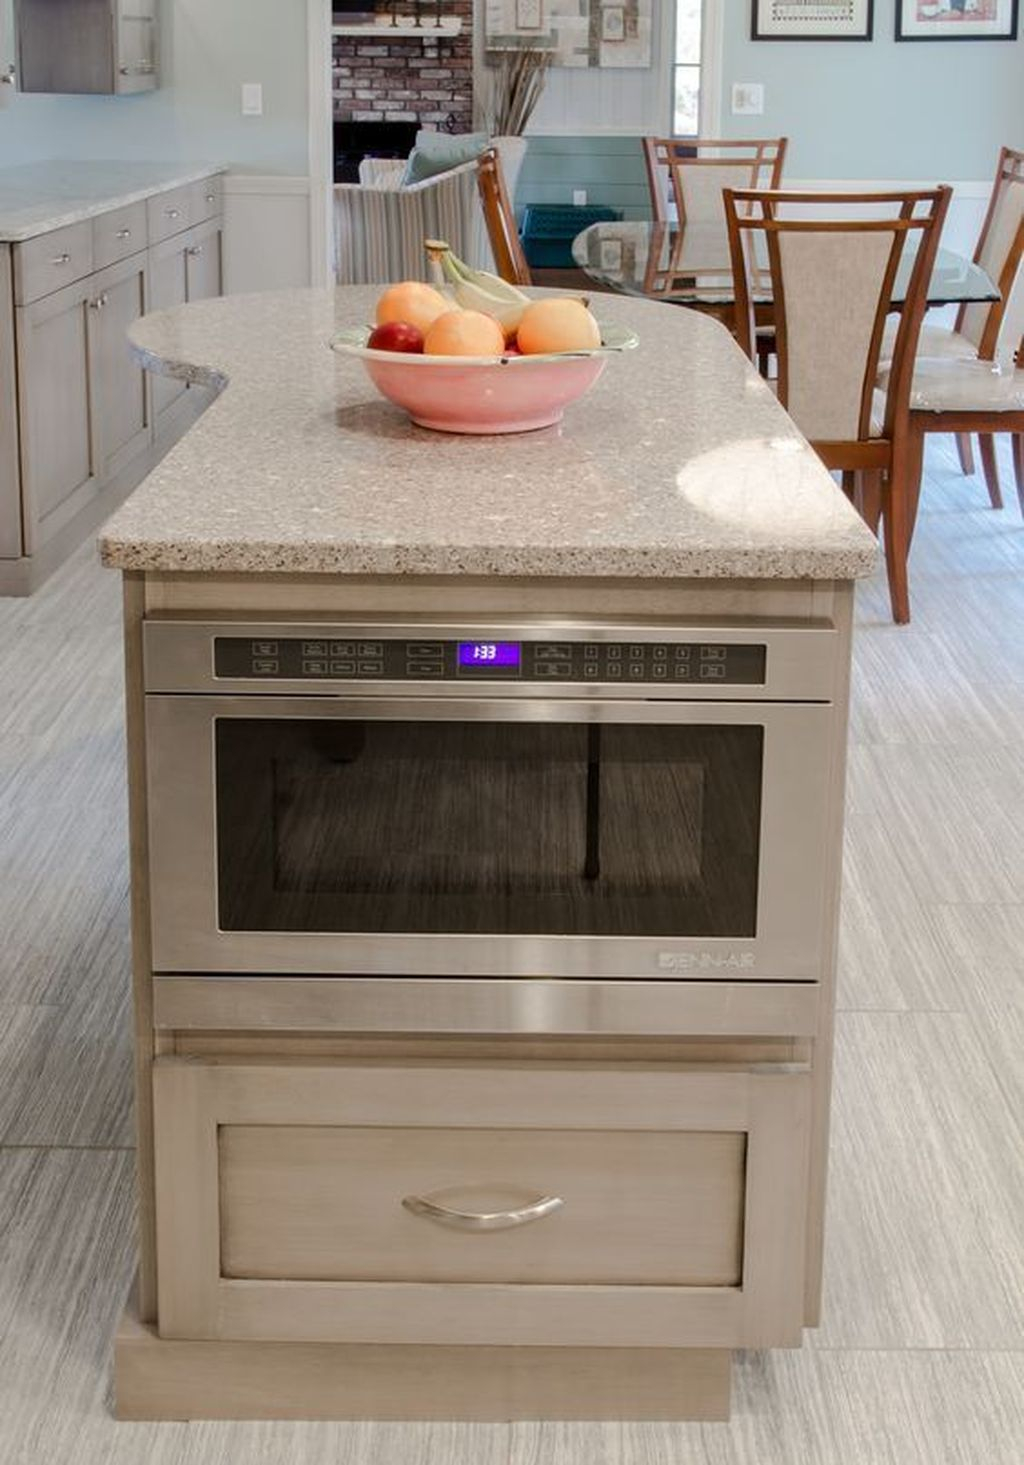 Cool Diy Kitchen Design Ideas You Will Definitely Want To Keep 21